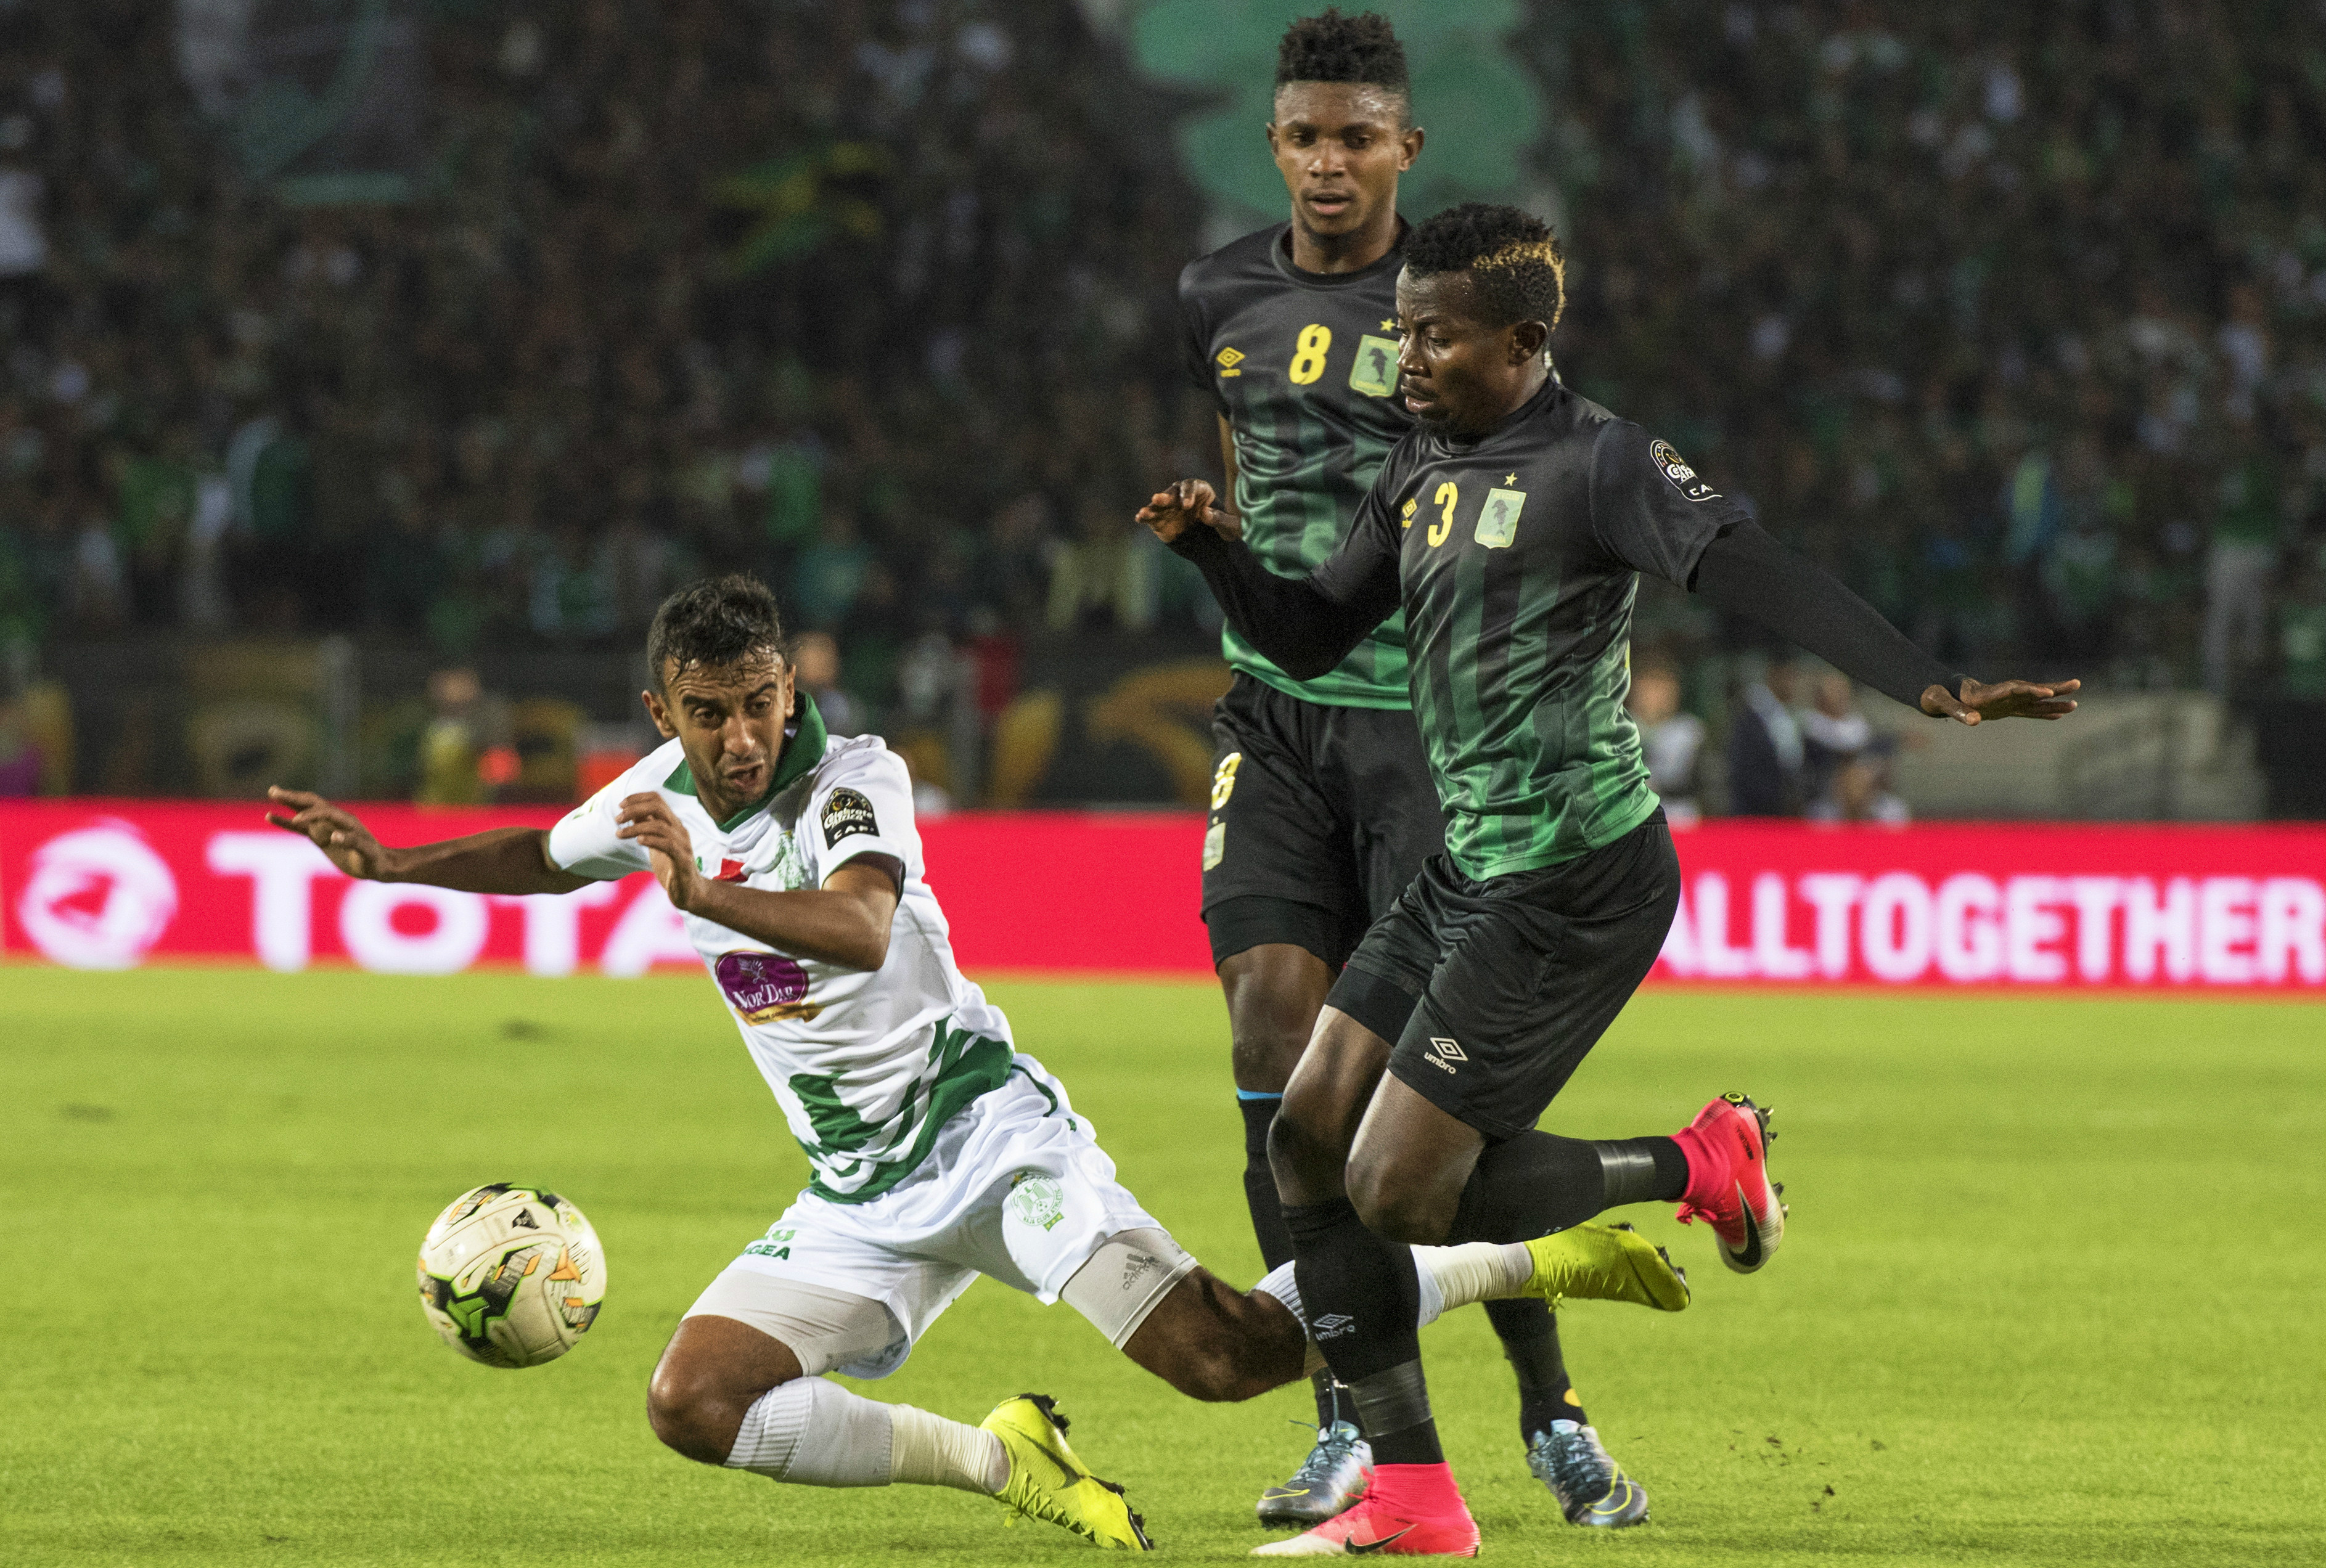 AS Vita v Raja Casablanca